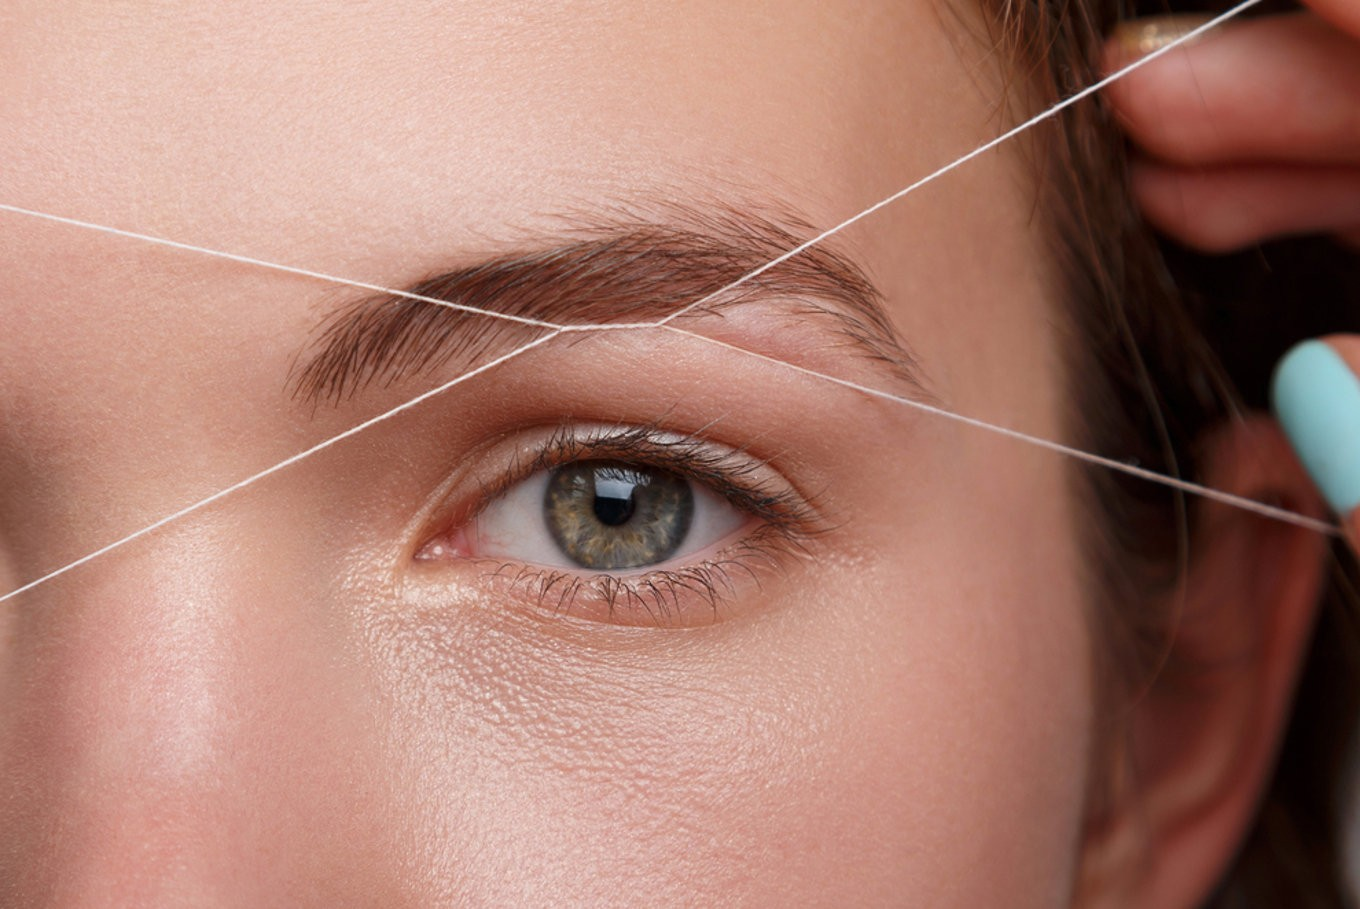 fead86b574e Where to get perfect eyebrows in Jakarta - Lifestyle - The Jakarta Post